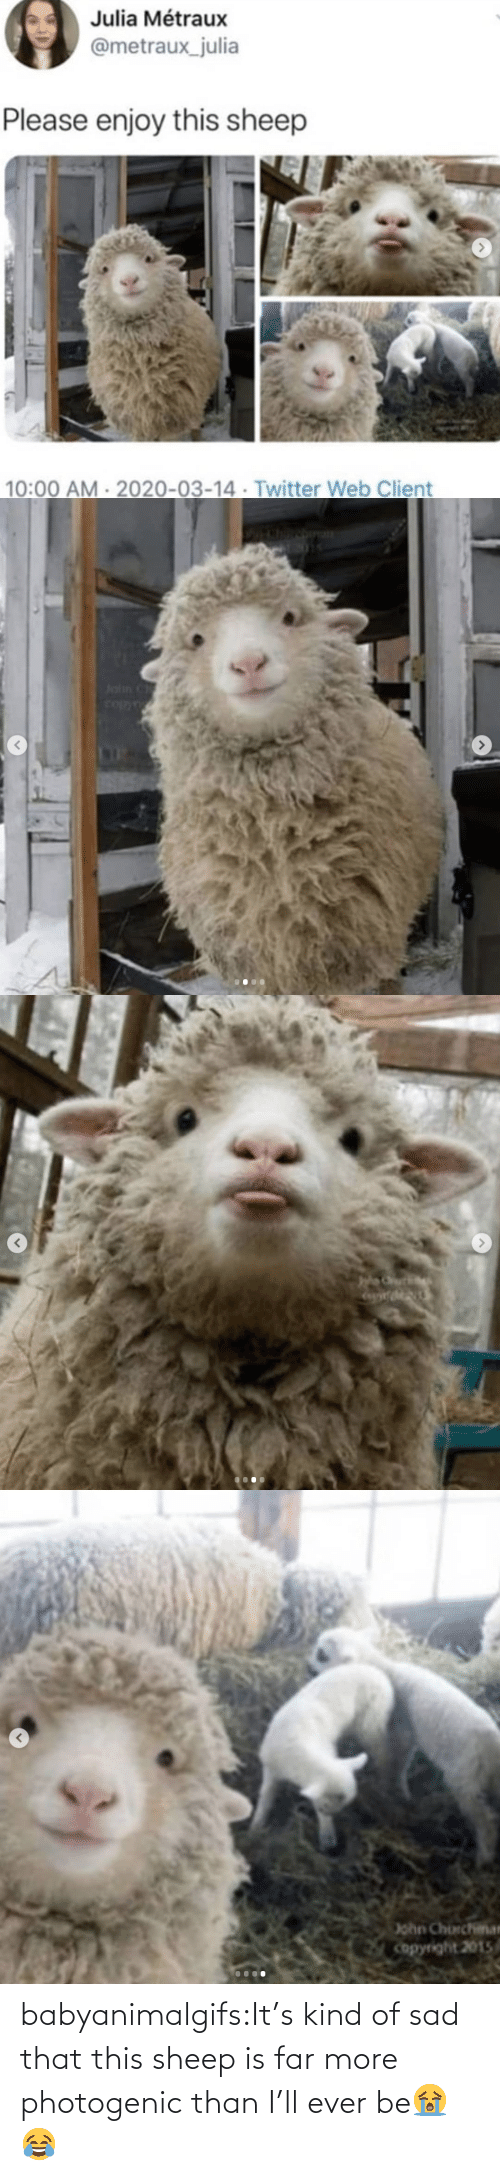 Far: babyanimalgifs:It's kind of sad that this sheep is far more photogenic than I'll ever be😭😂